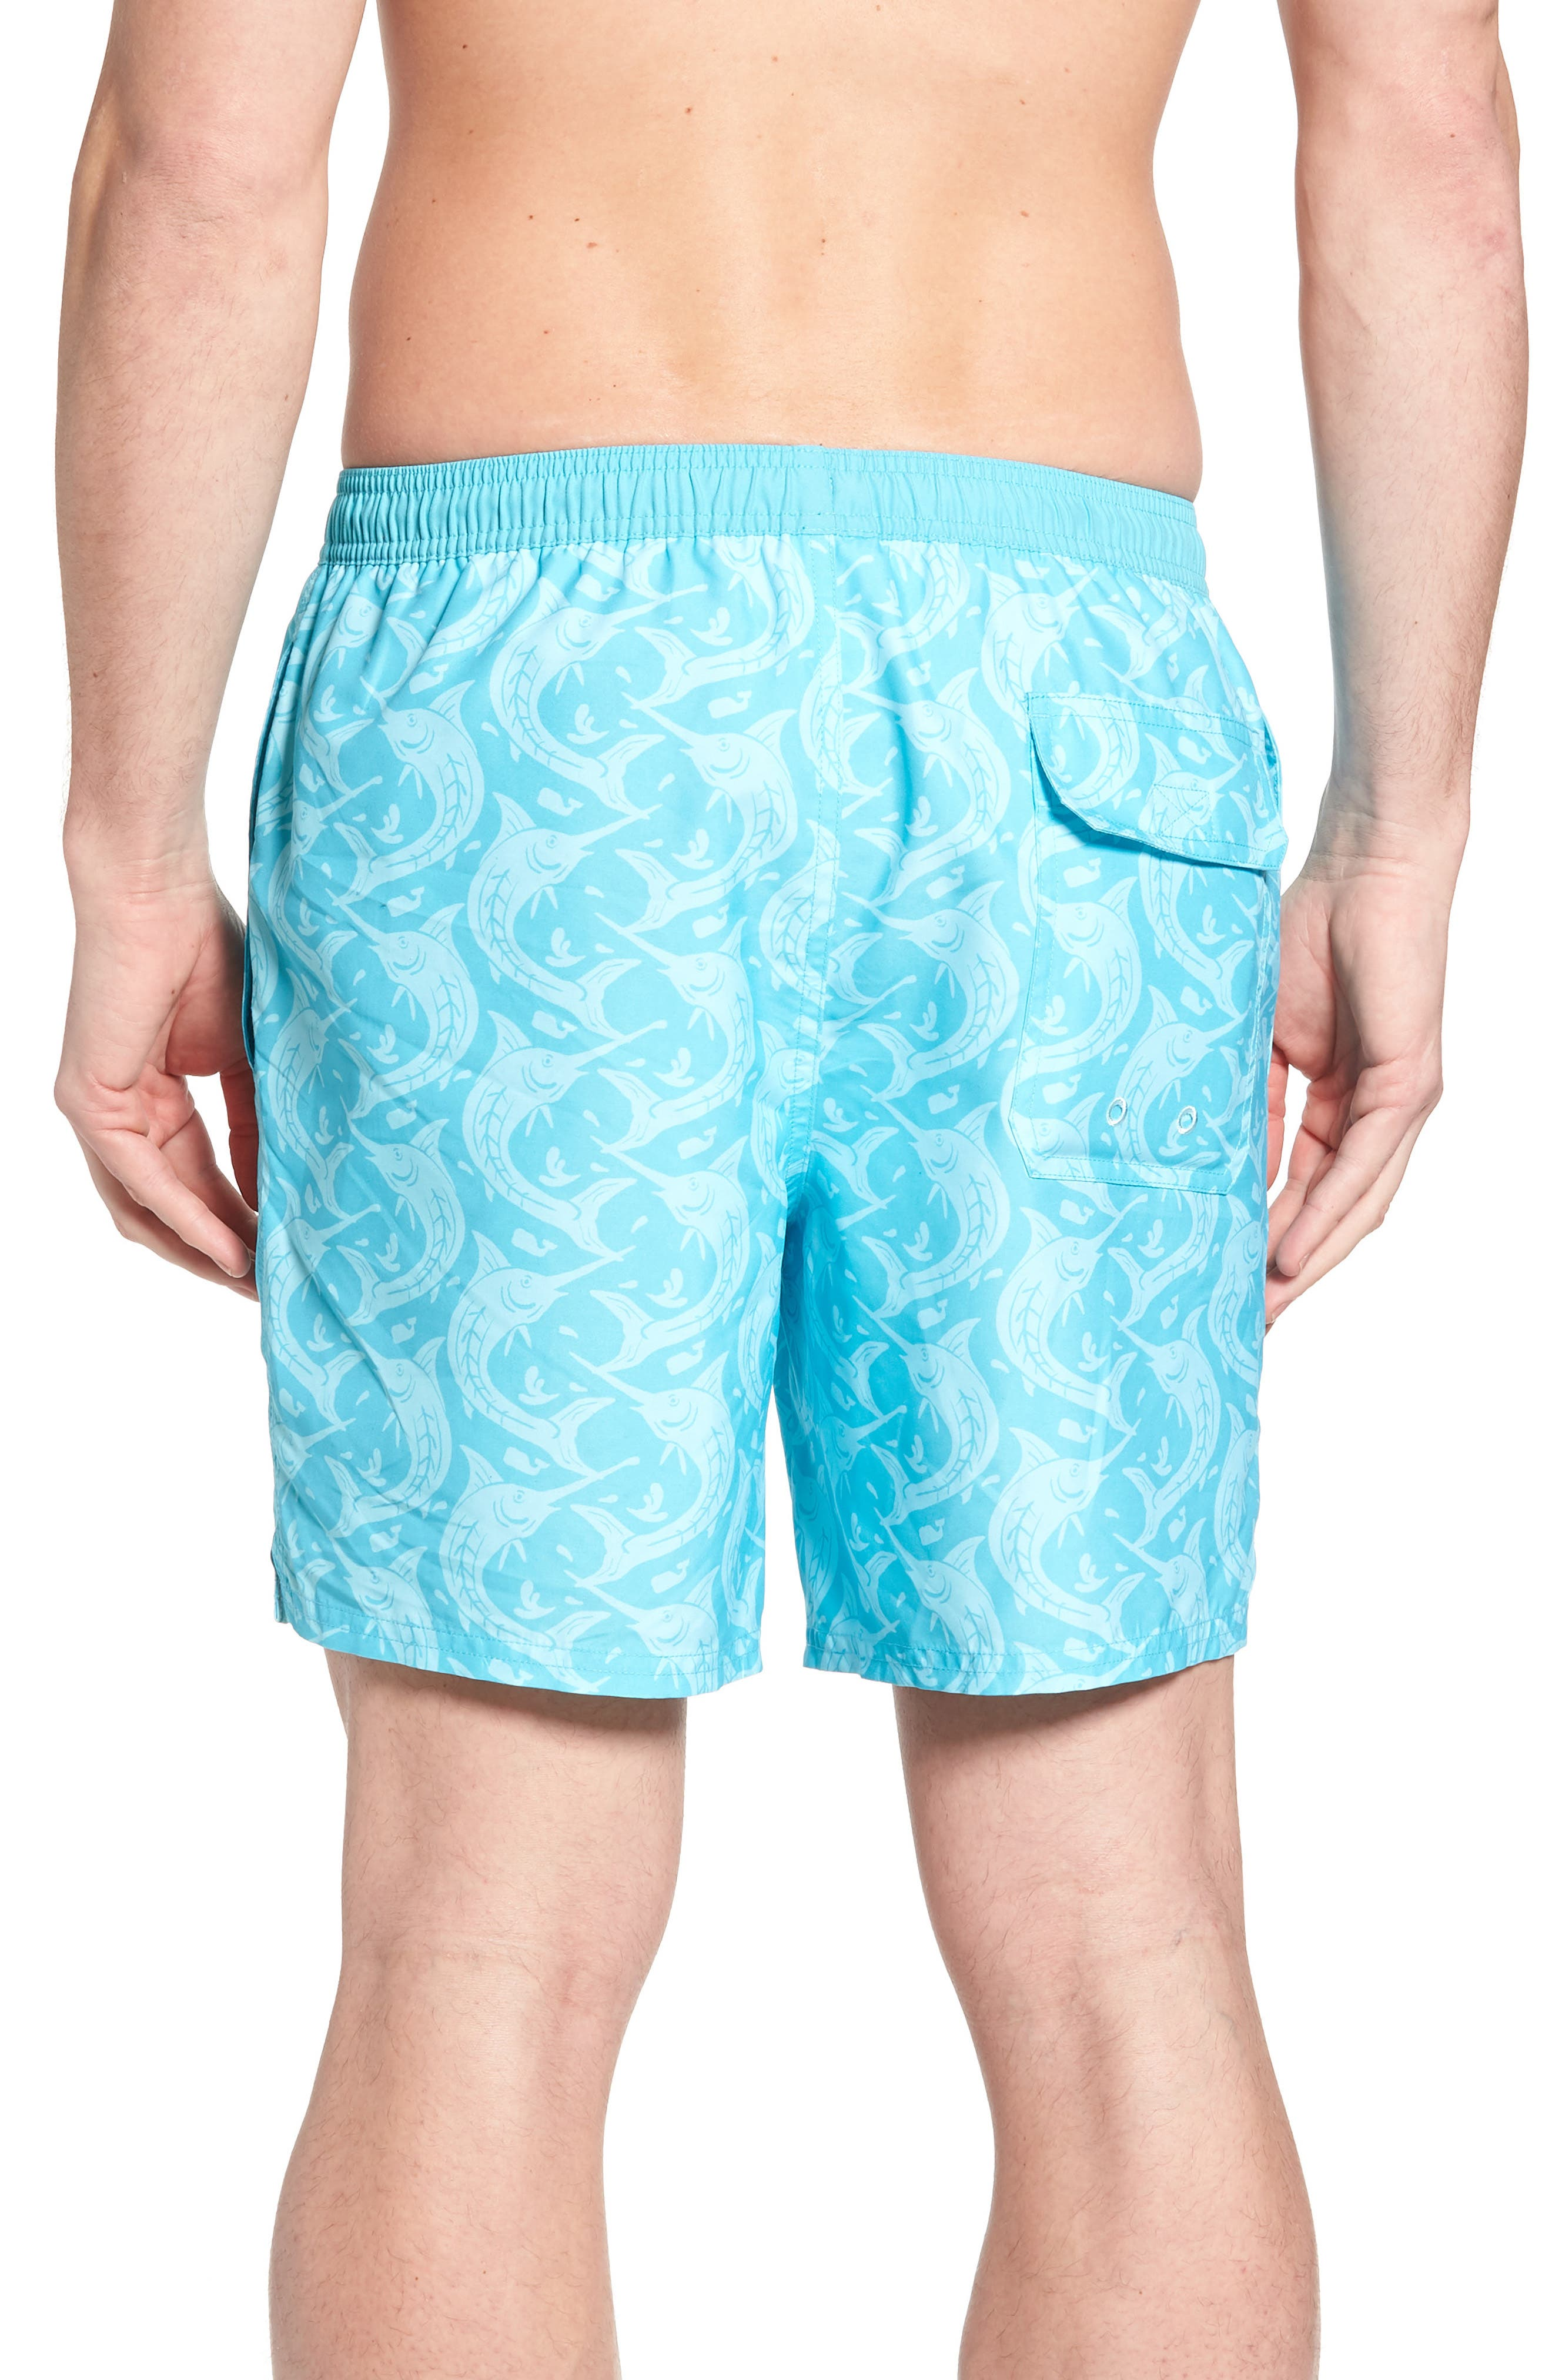 Marlin Out of Water Chappy Swim Trunks,                             Alternate thumbnail 2, color,                             459